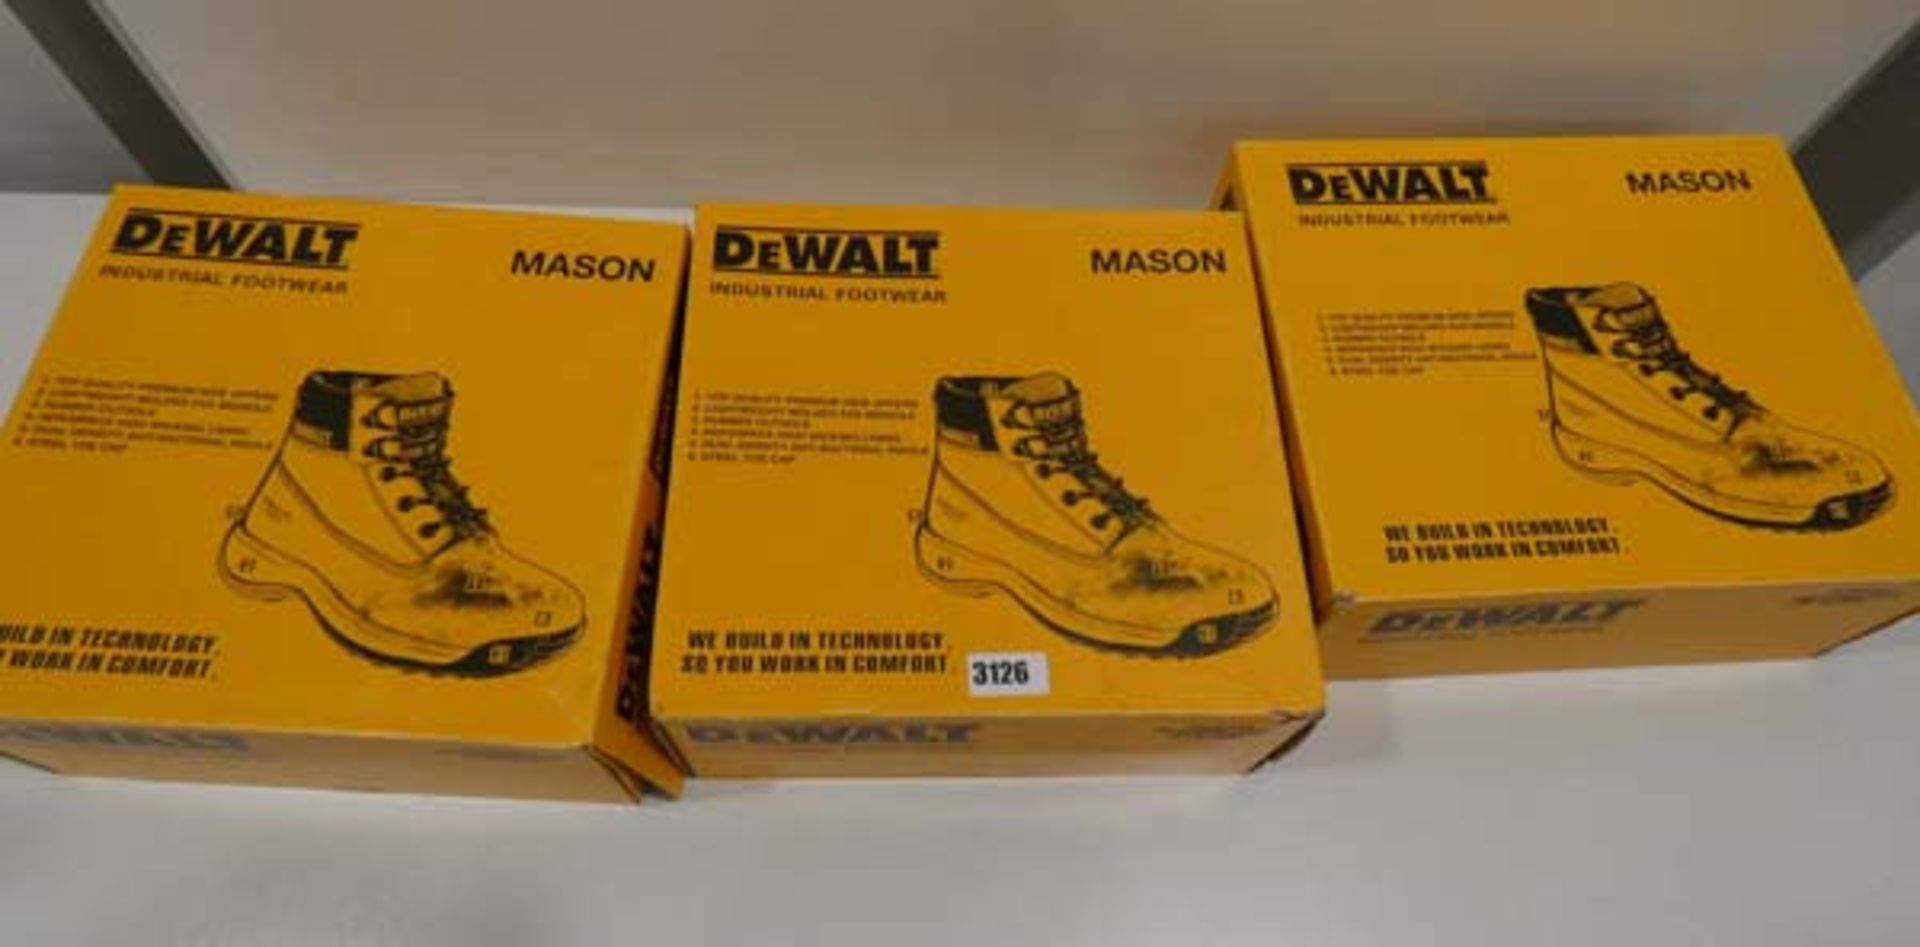 3 Pairs of DeWalt mason industrial steel top capped boots in sizes 11, 8 & 7